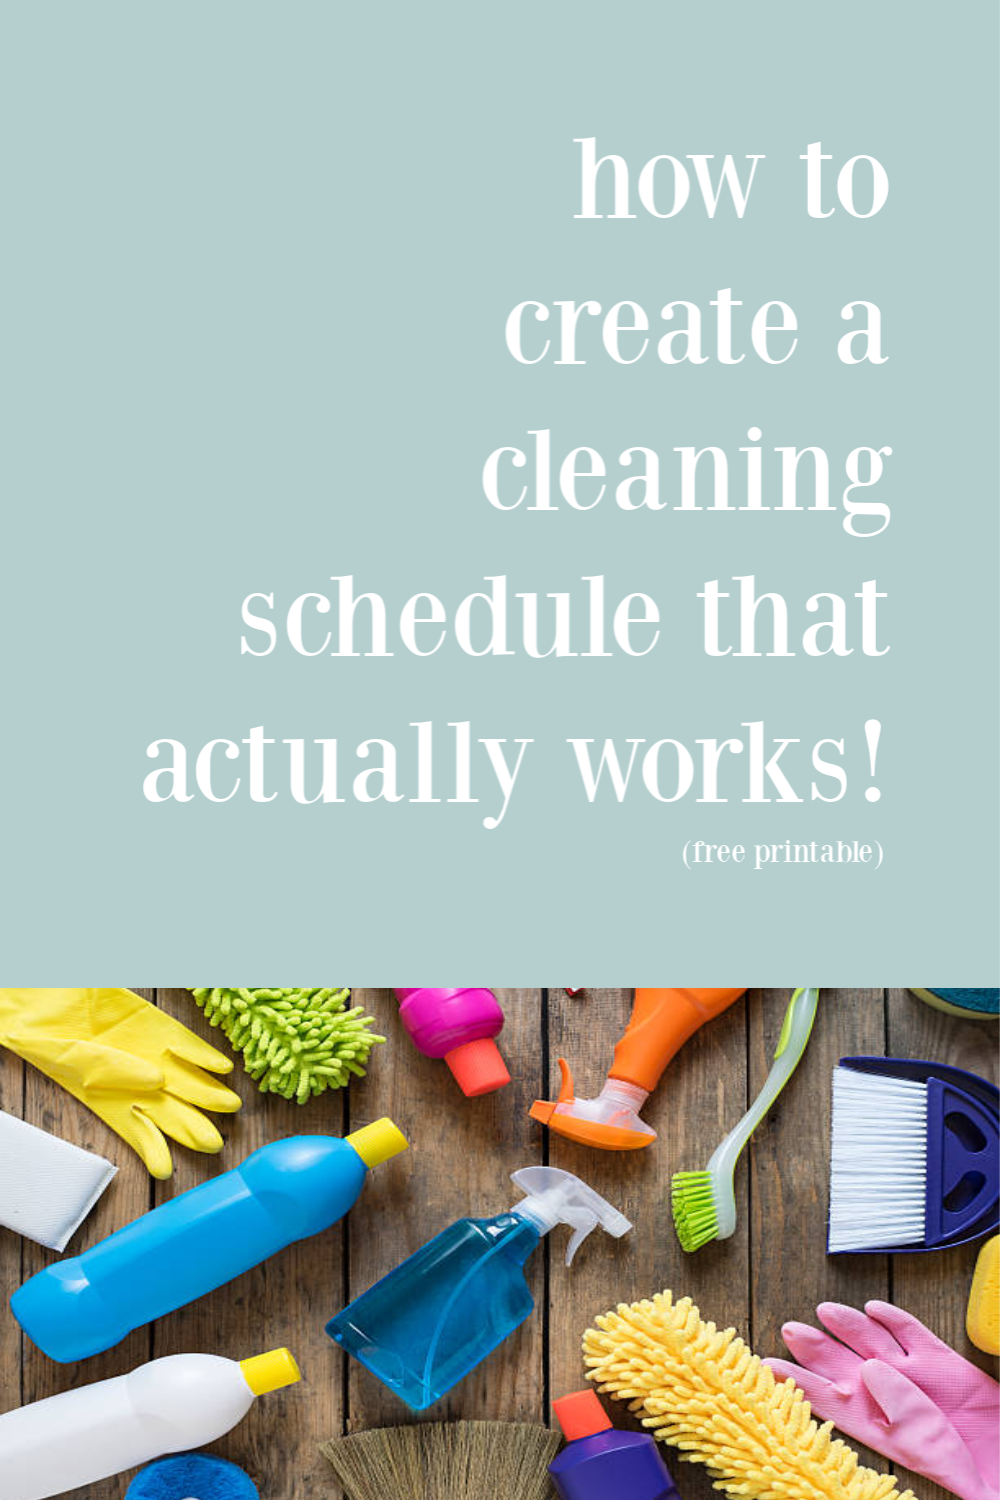 How to create a cleaning schedule that actually works! Easy tips and a printable guide!